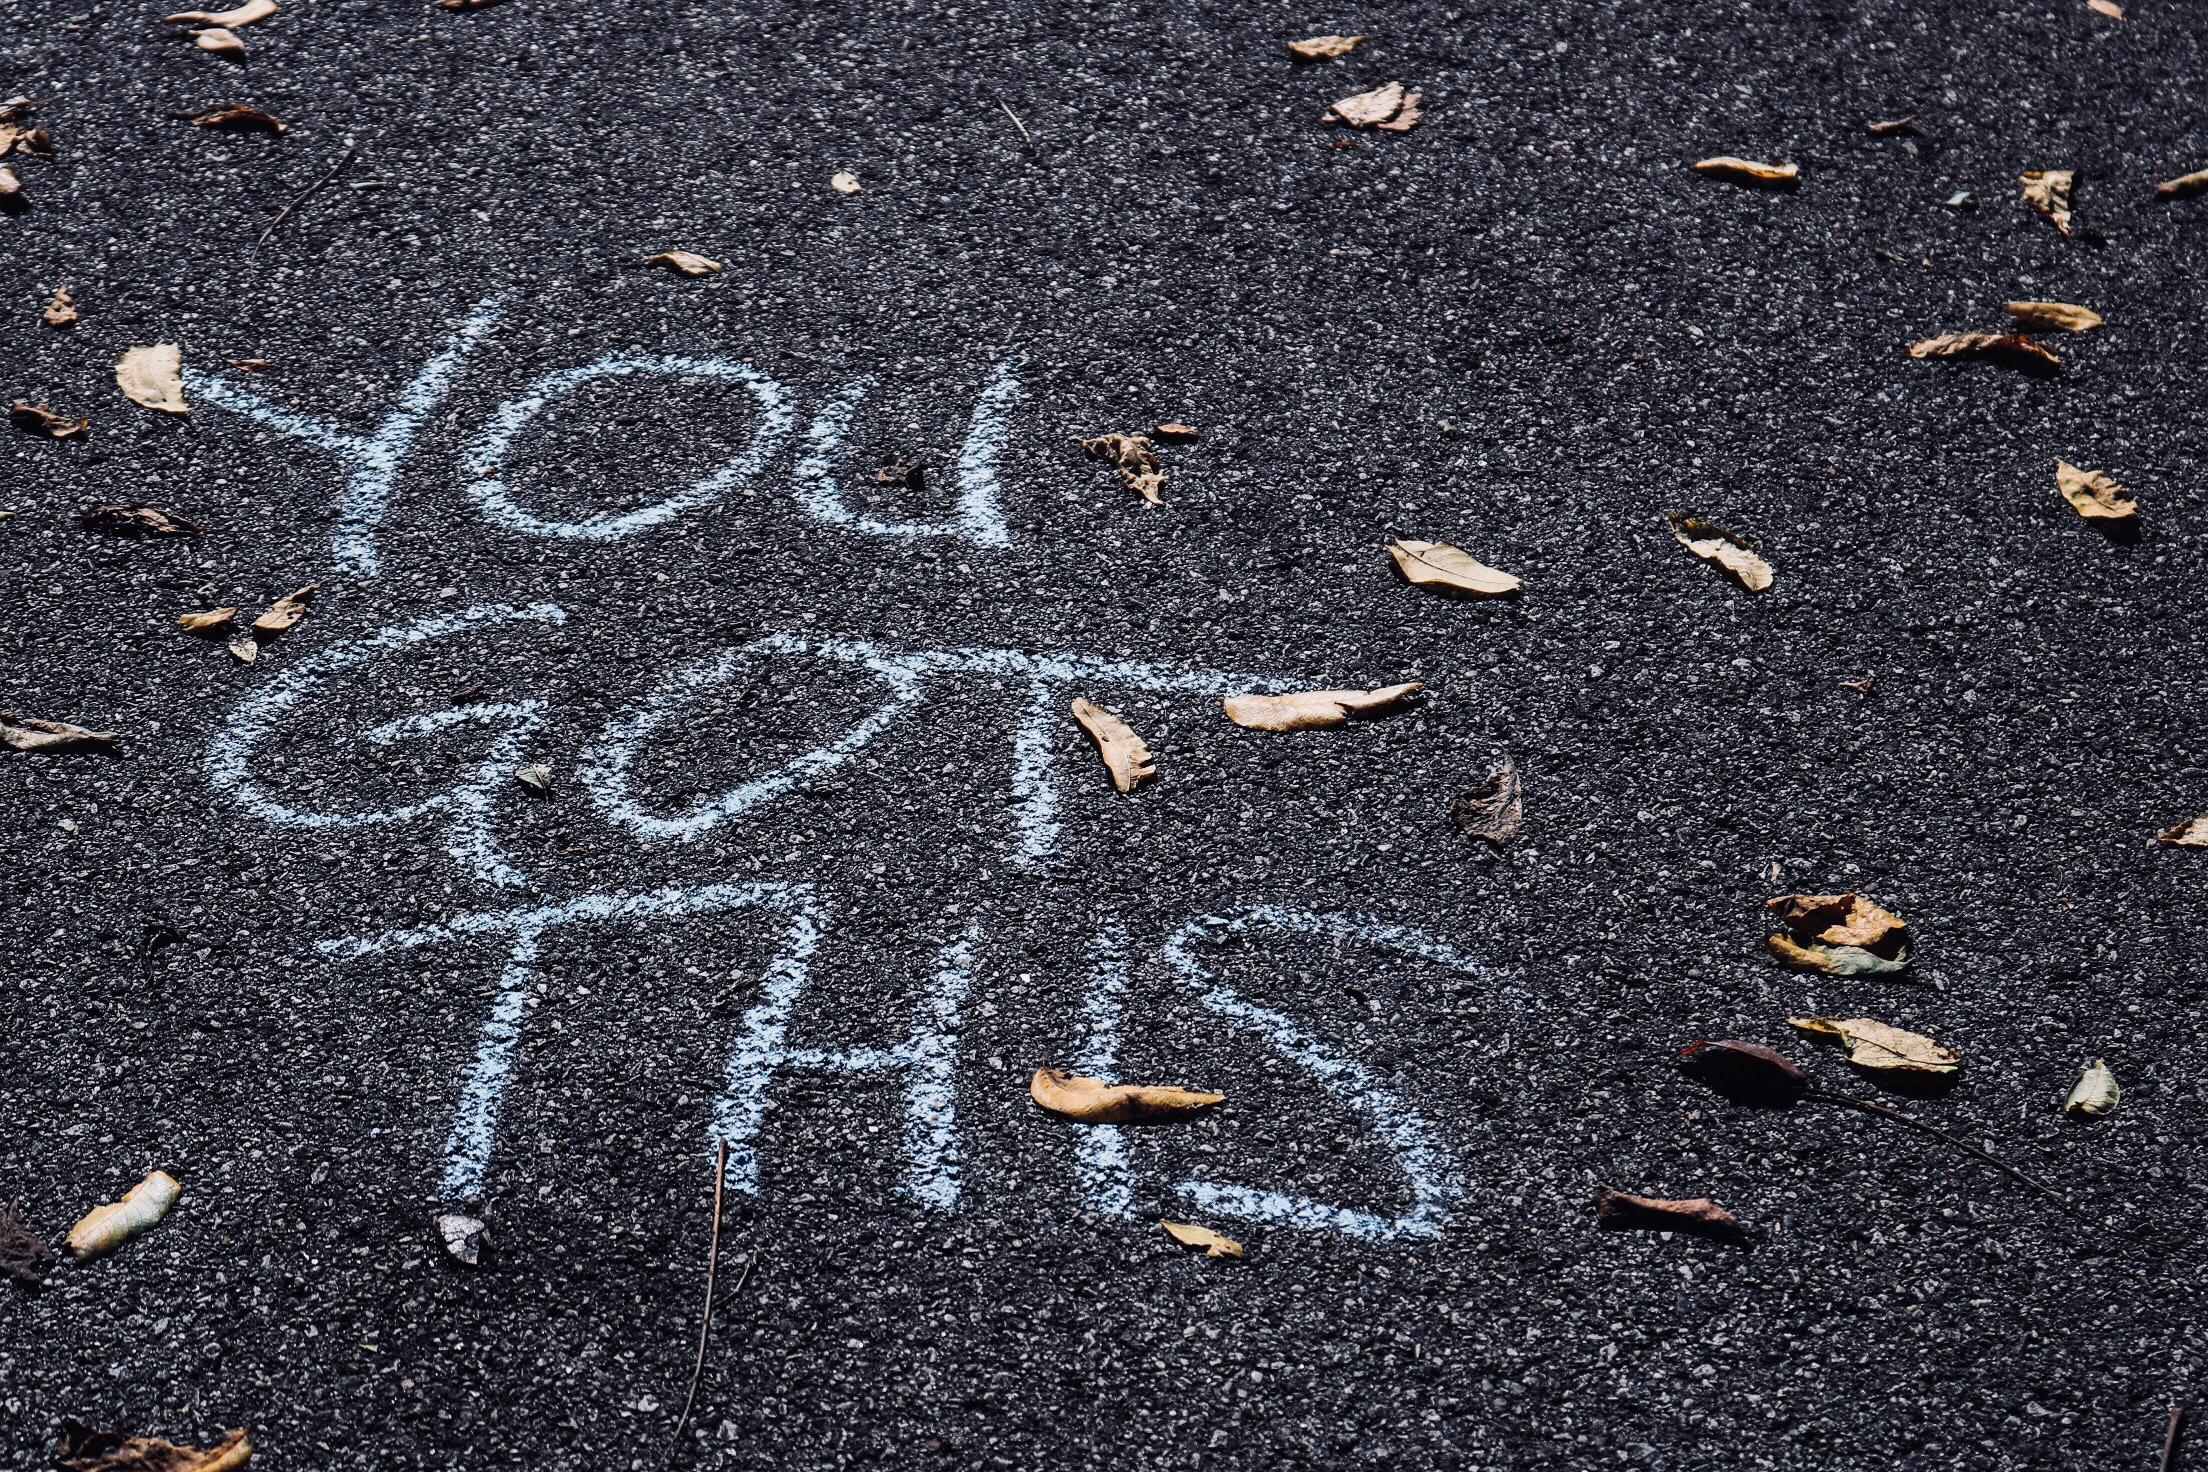 Want to Change Your Life Story? Start with 1 Simple Habit